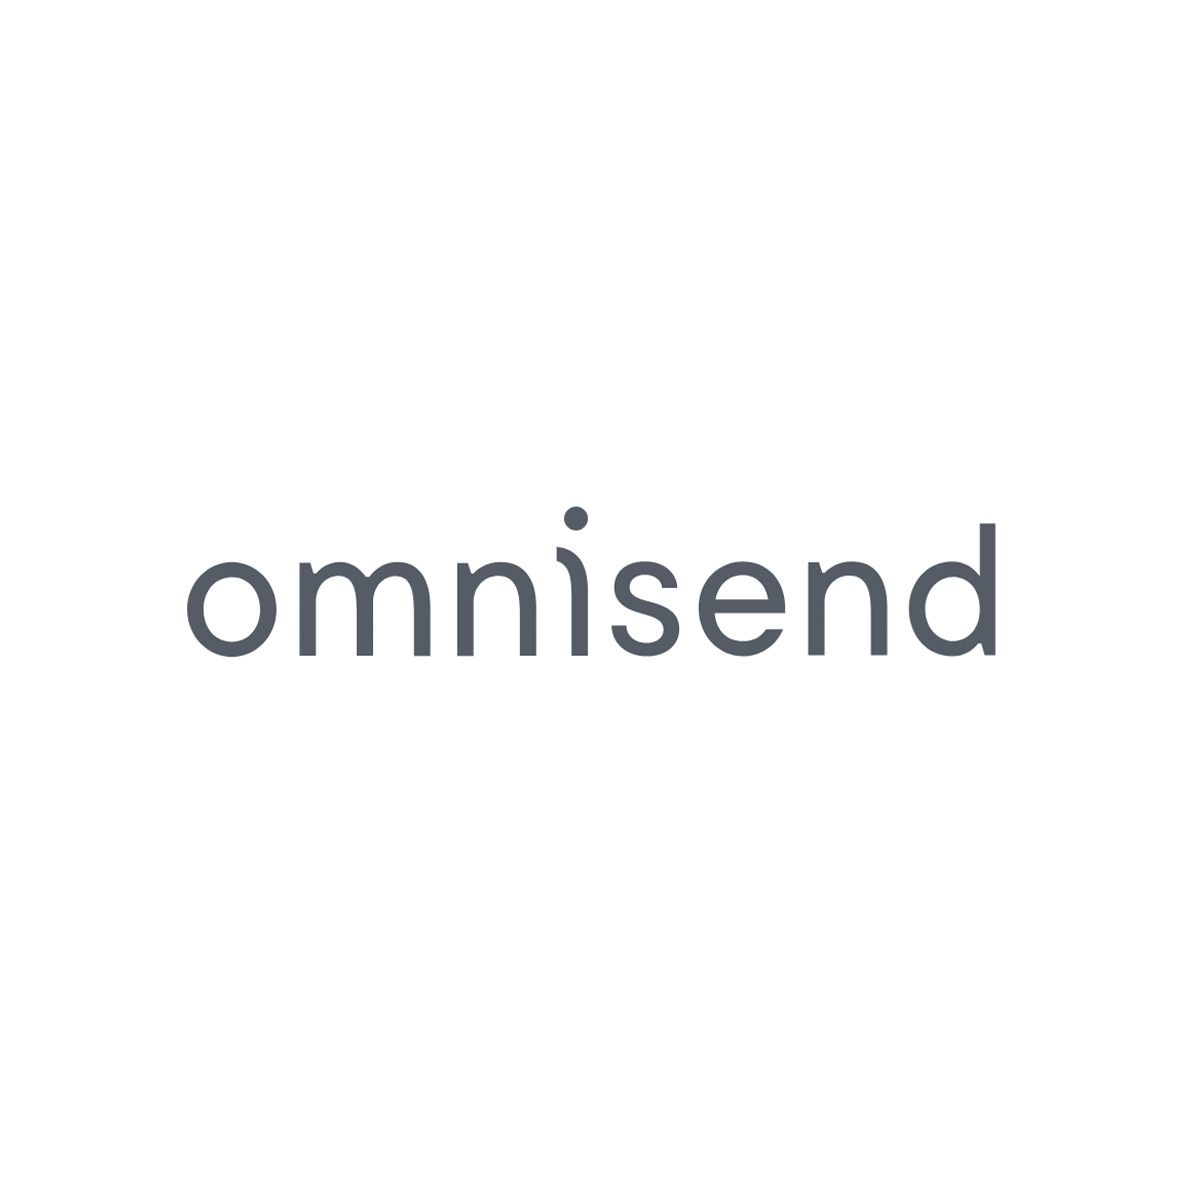 Omnisend is an omnichannel marketing automation platform for ecommerce businesses. Omnisend allows you to add several channels to the same automation workflow for seamless communication via email, SMS, web push notifications, and more.